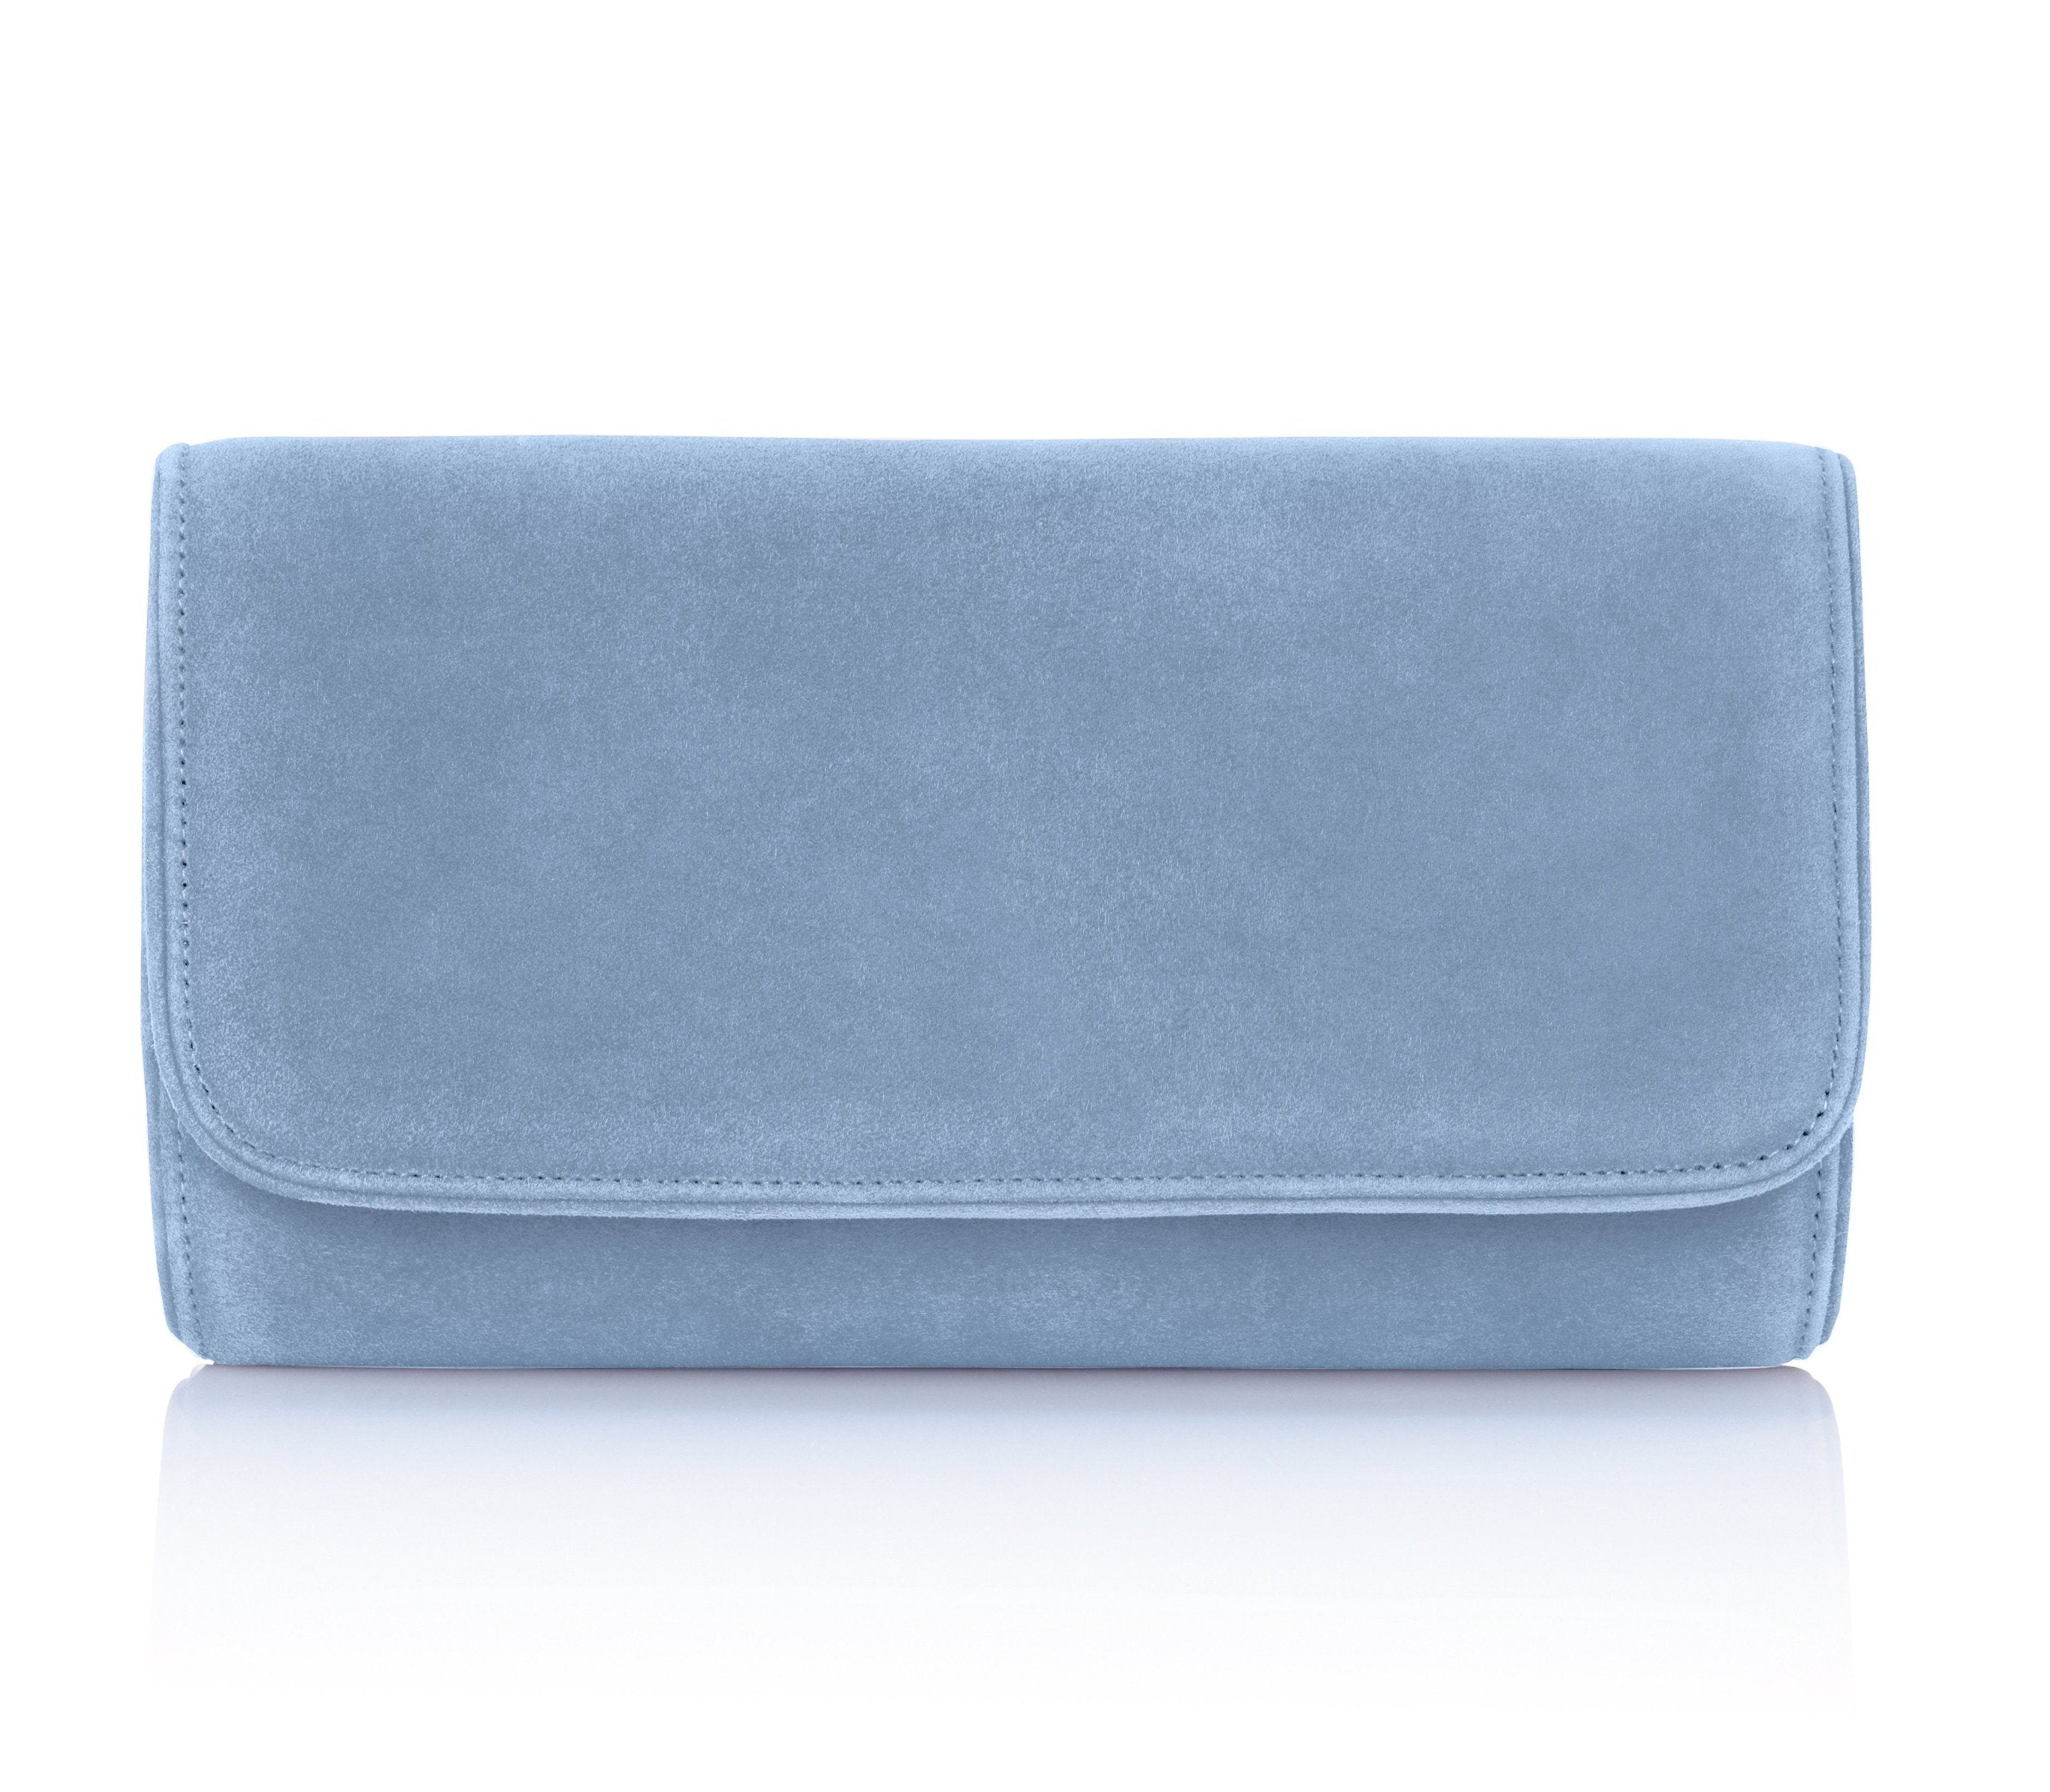 Blue Suede Occasion Clutch Bag By Emmy London